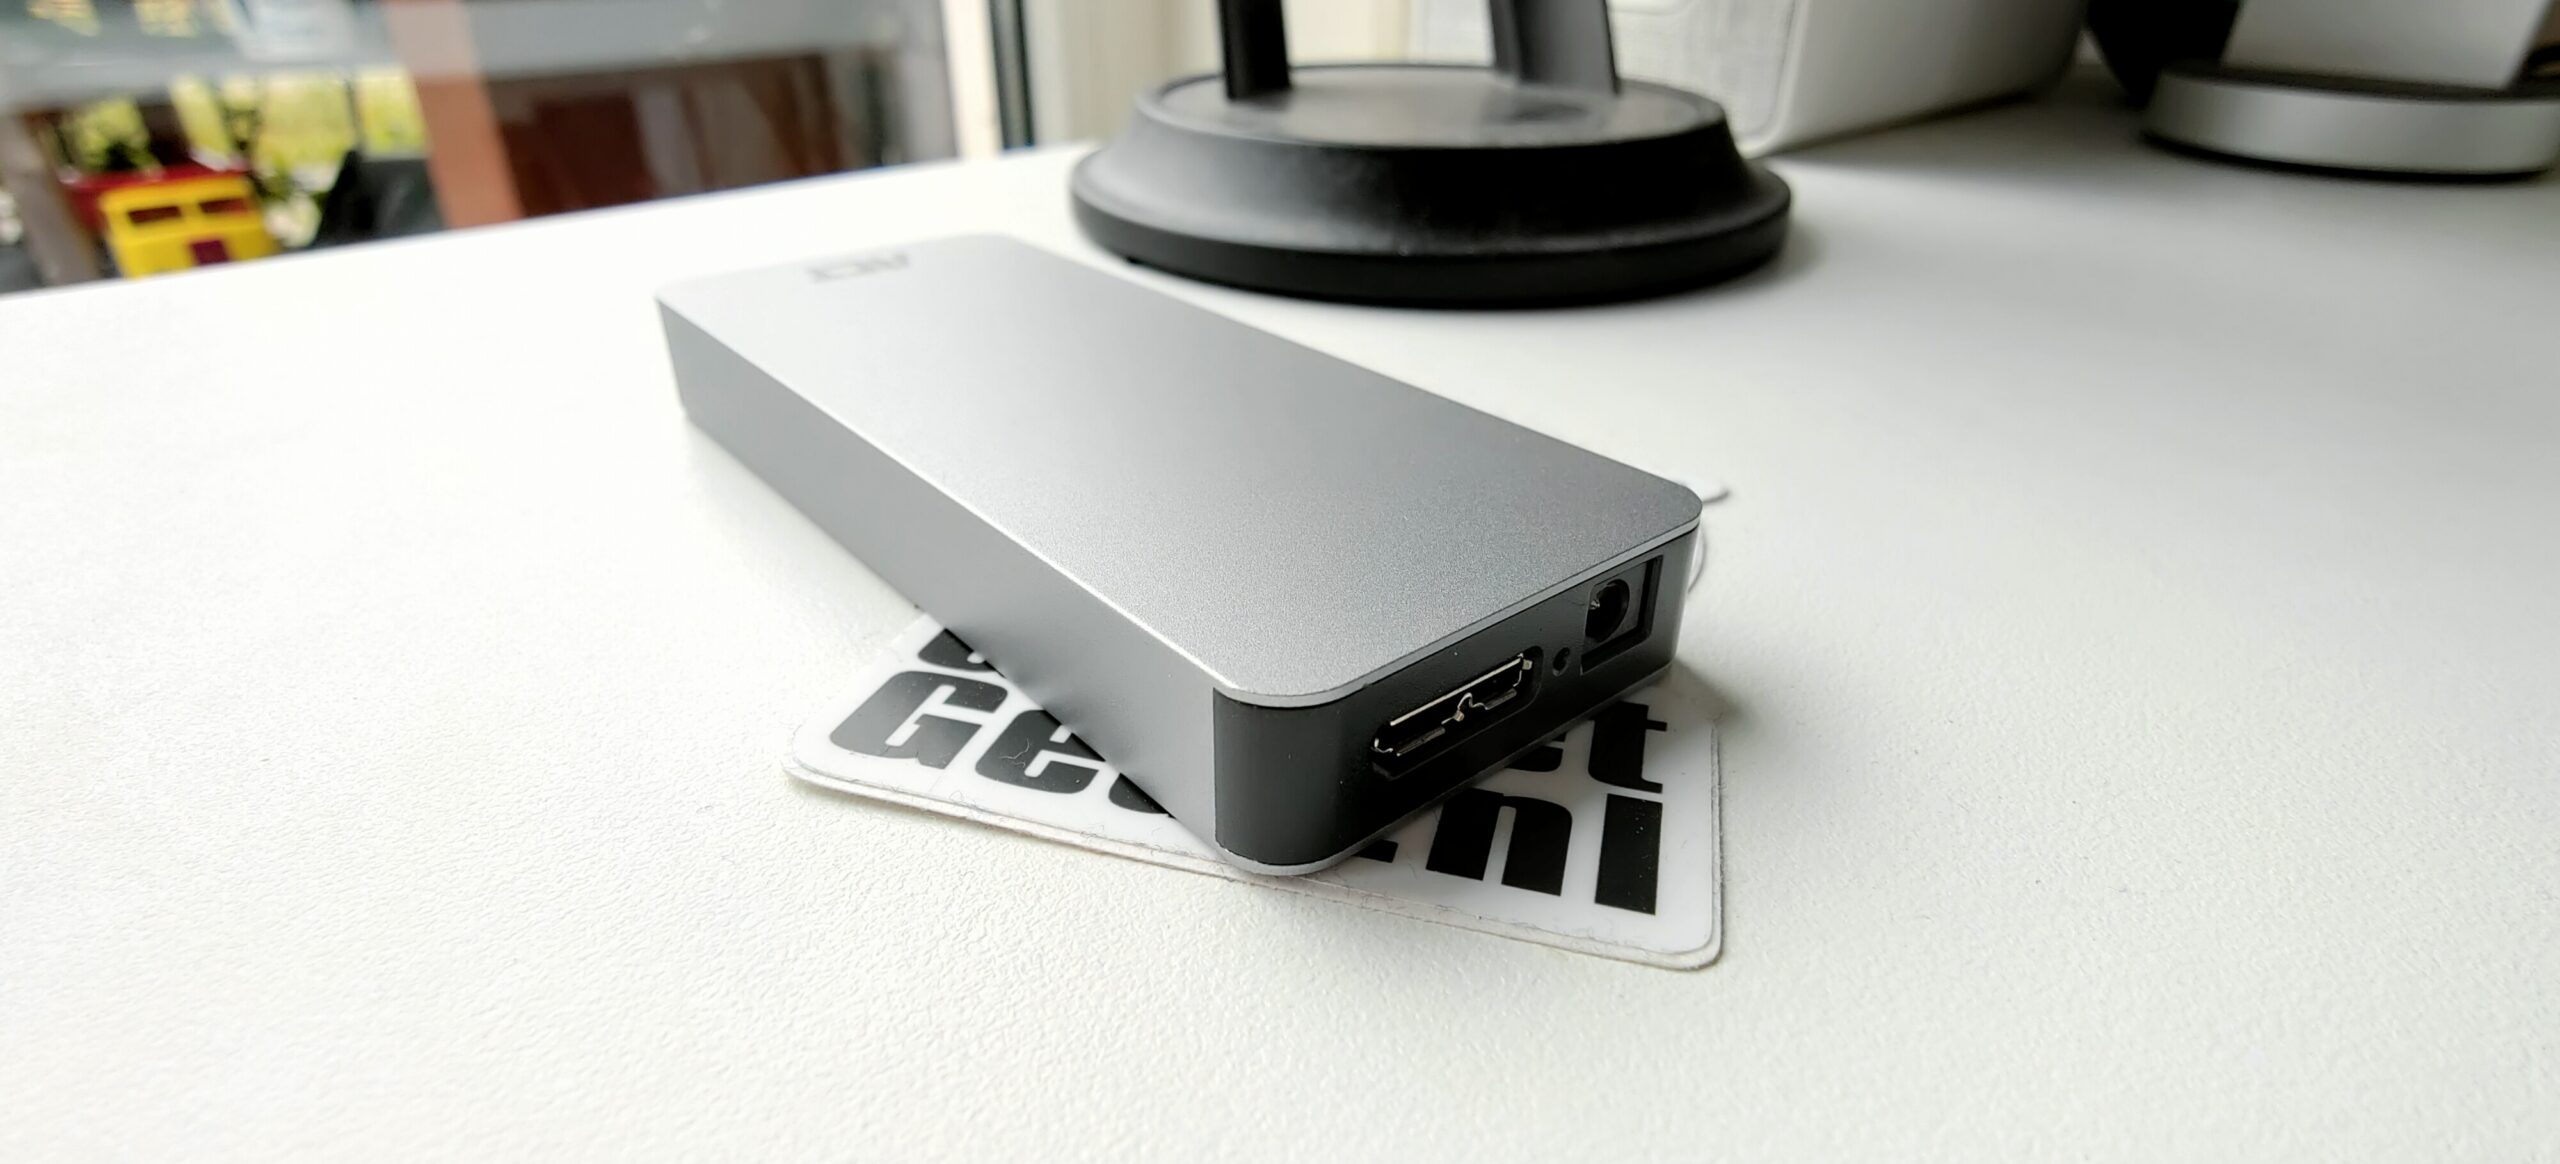 ACT USB-A Hub Powered